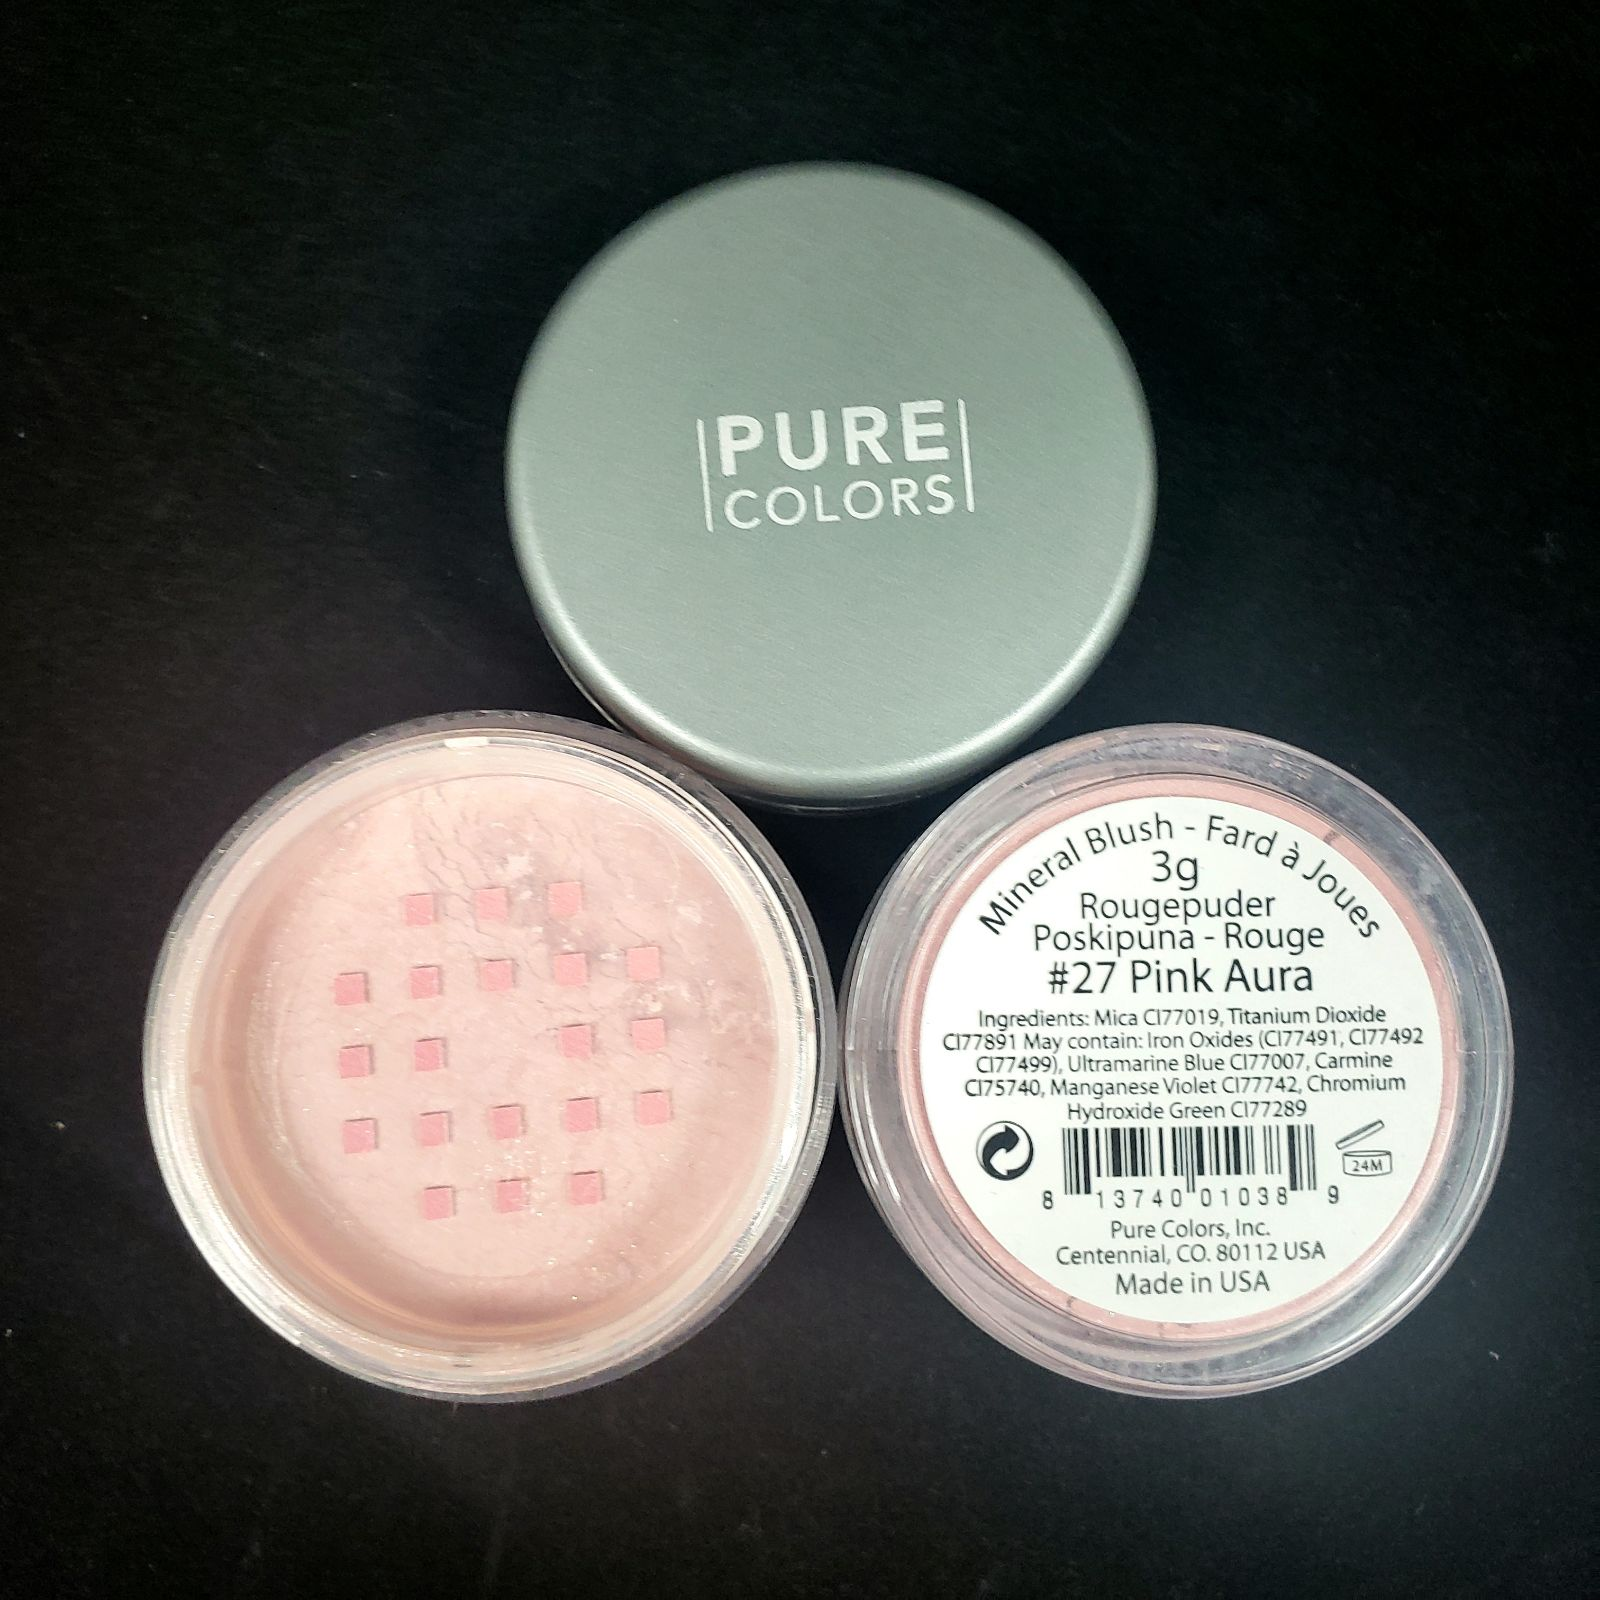 Pure Color #27 Pink Aura Mineral Blush